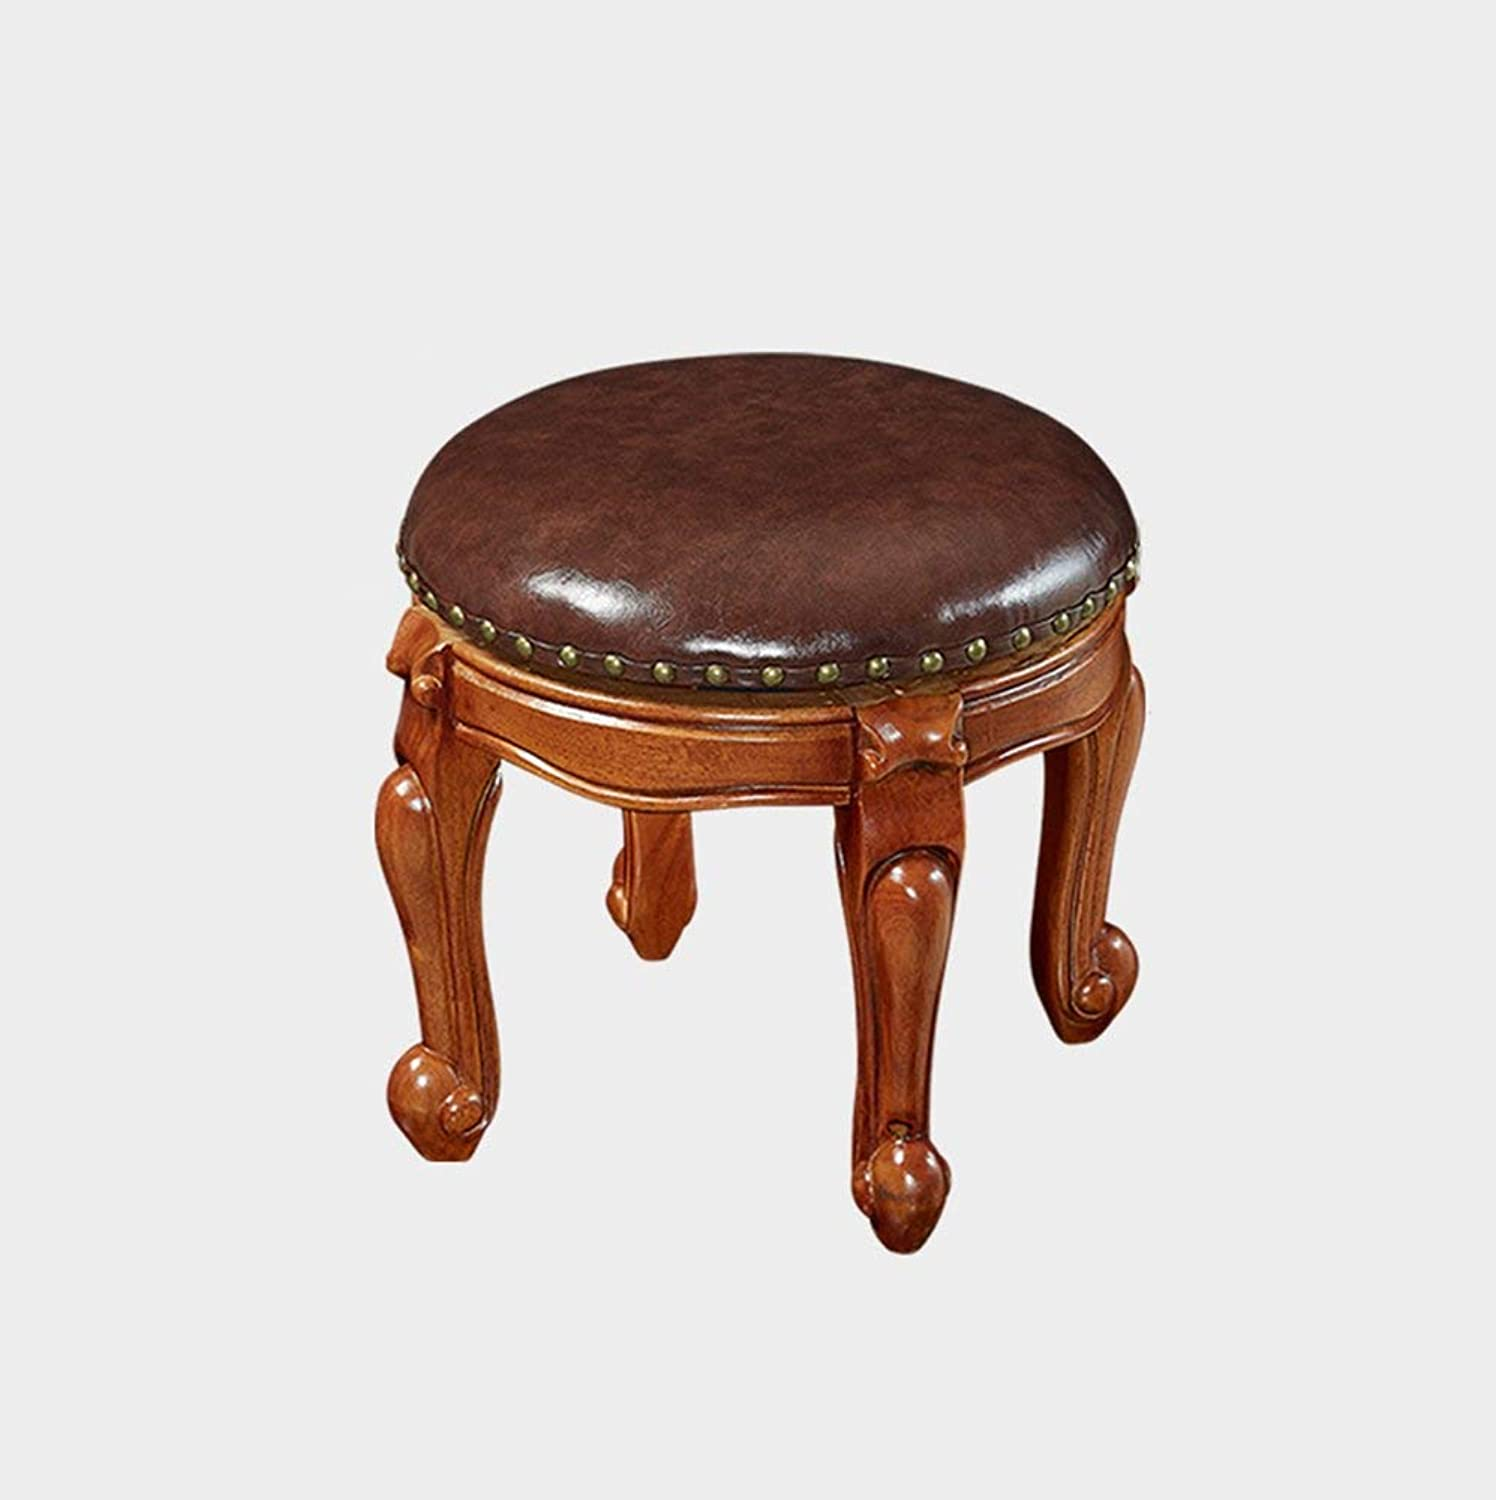 Lazy Sofa stool shoes bench Tea table stool American Solid wood low stool Small stool shoes bench Continental Stool Removable round Short leg sofa stool Wooden benc Garden (color    4)